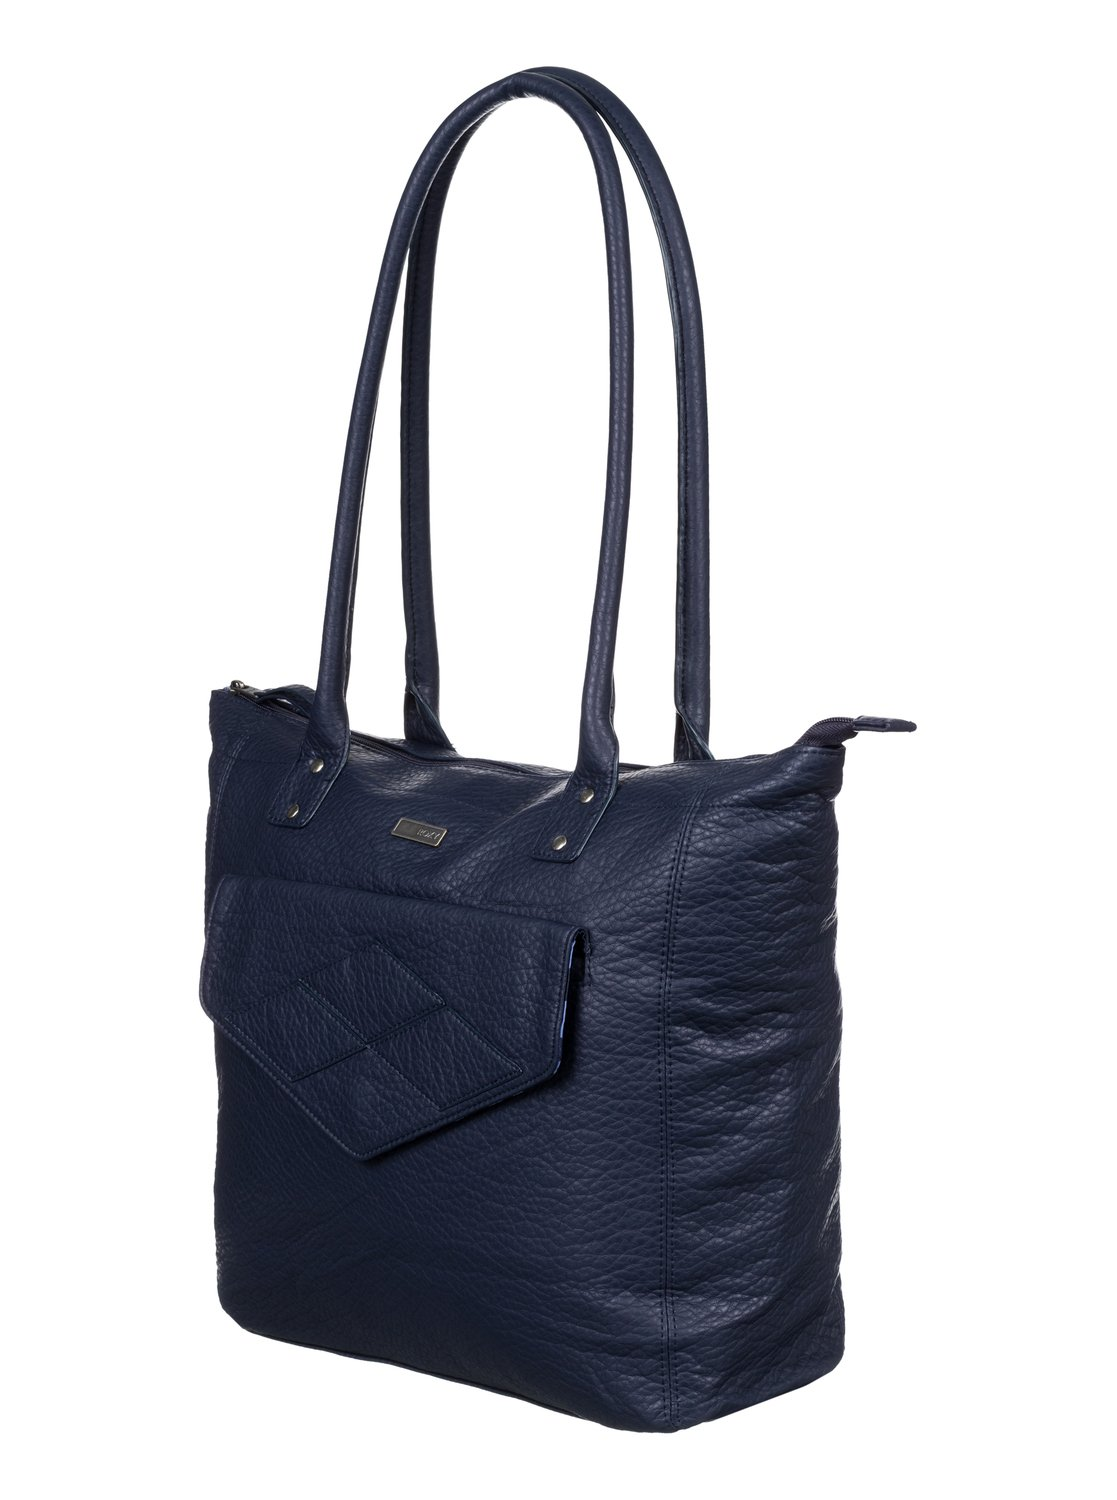 cheerfully fabric tote bag arjbt03004 roxy. Black Bedroom Furniture Sets. Home Design Ideas